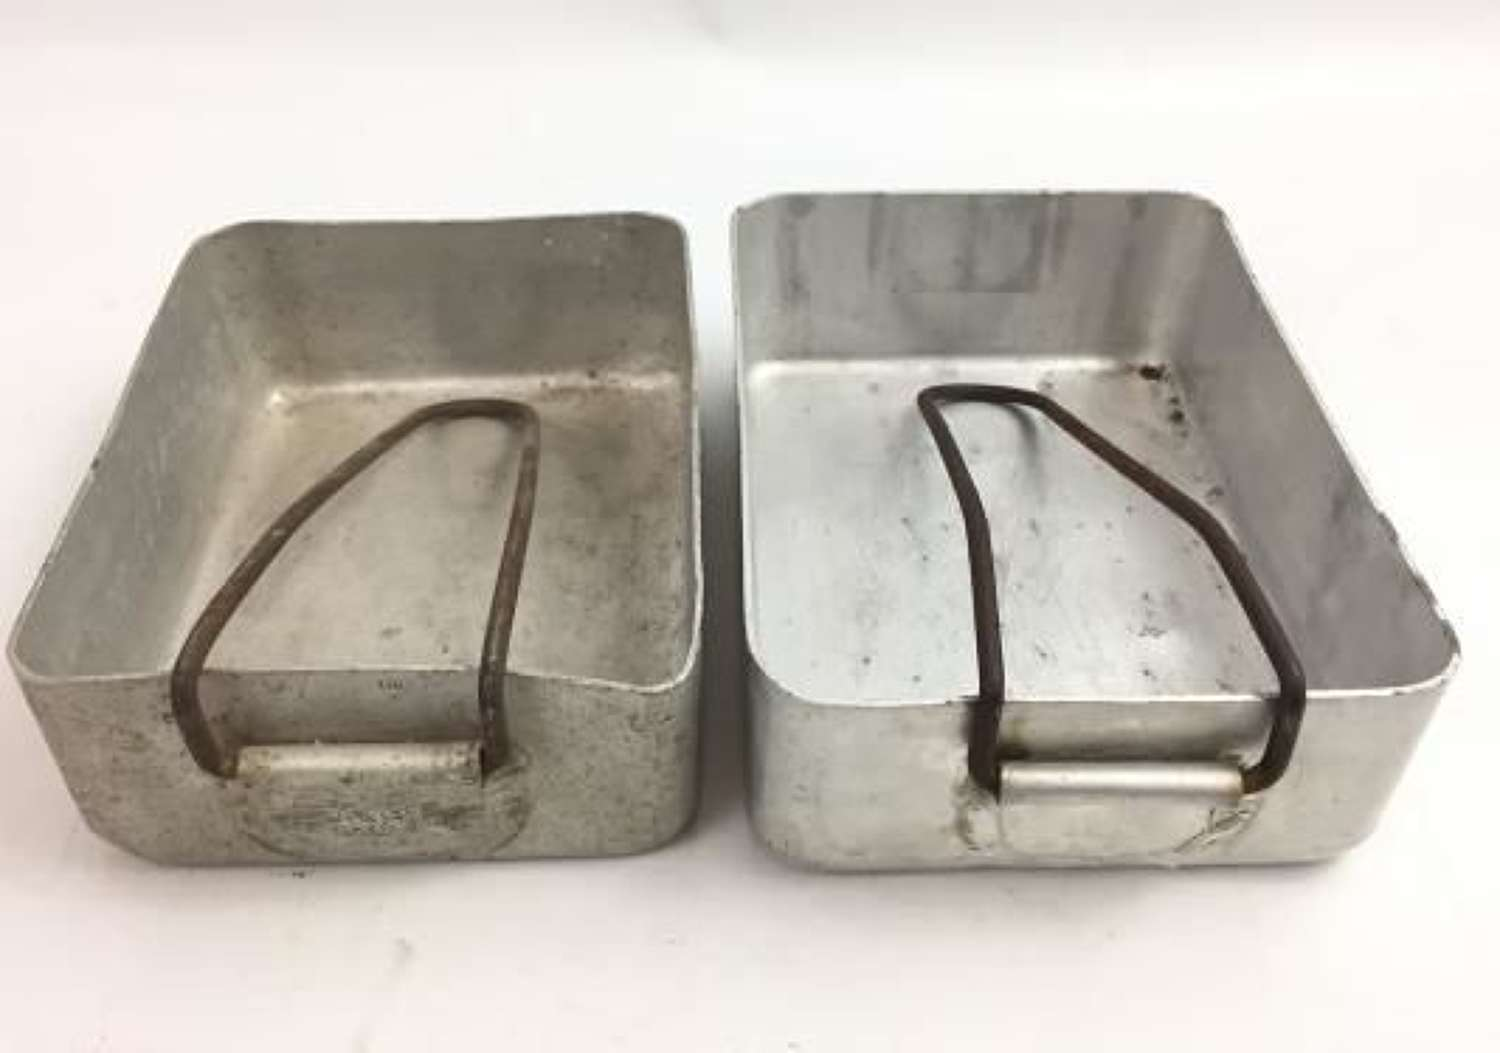 A Matched Pair of 1939 Dated British Army Mess Tins by 'E & Co'